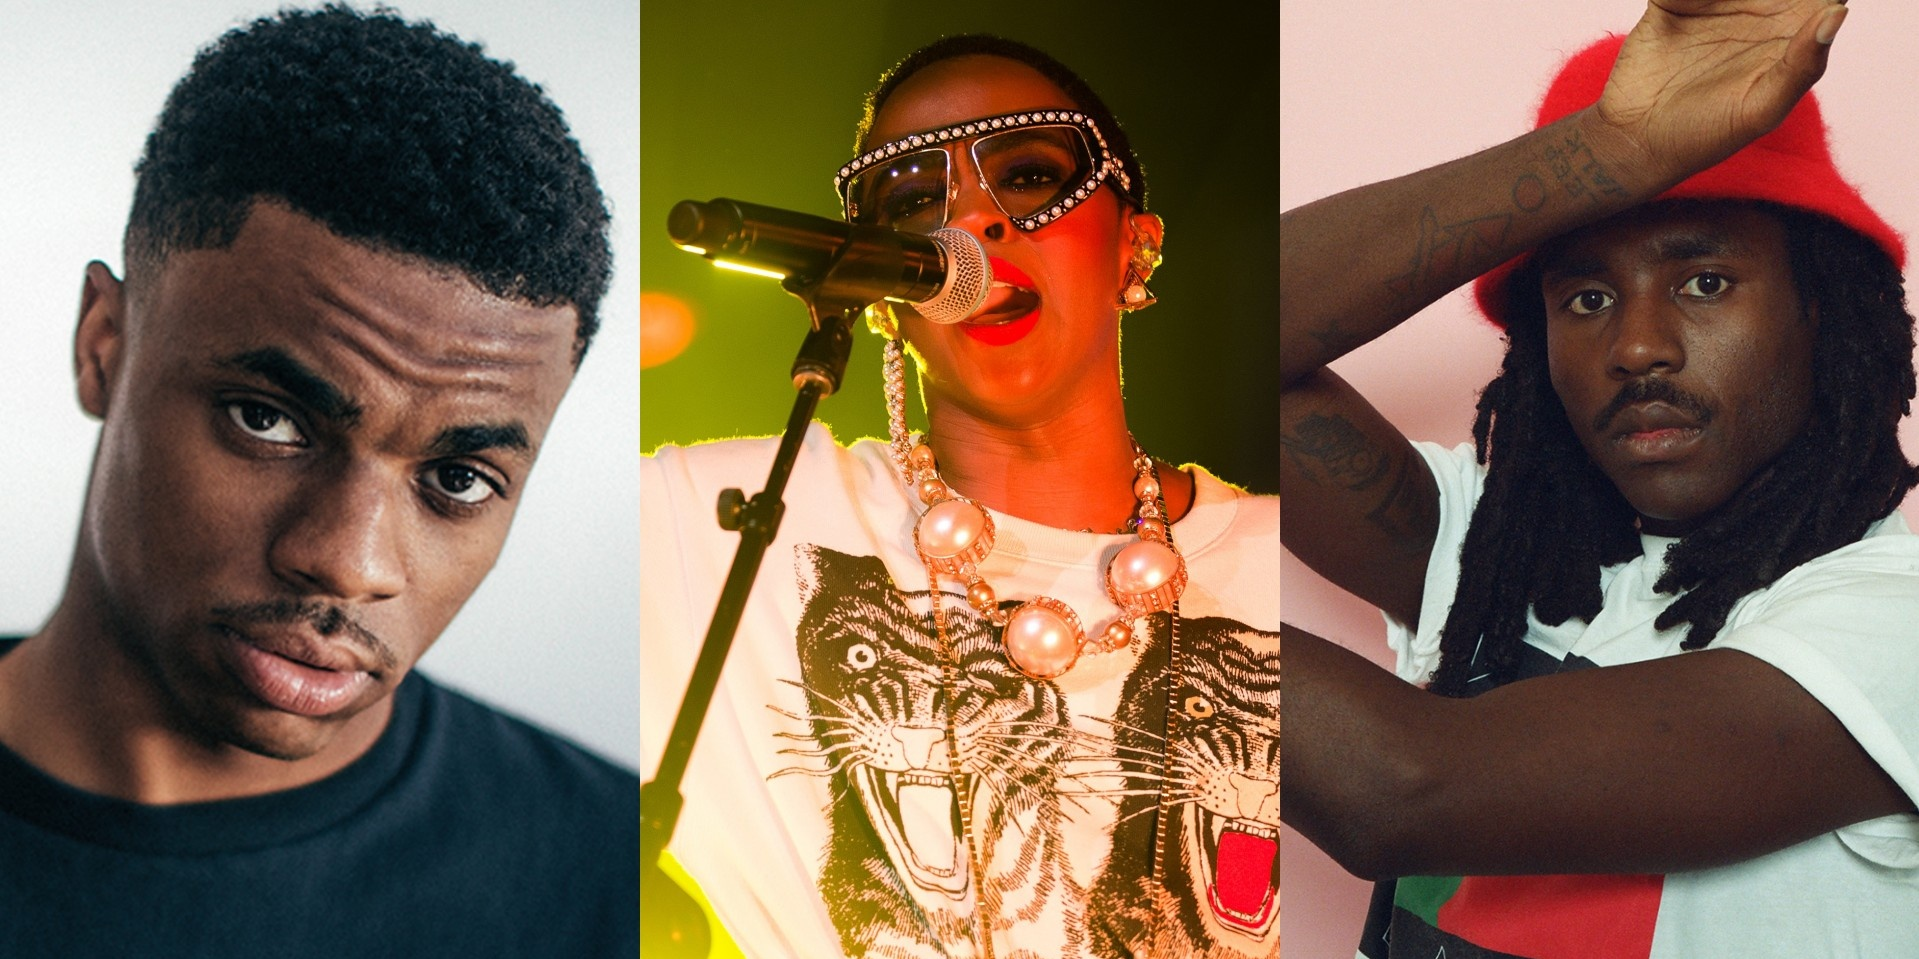 The Queen & Slim soundtrack features music by Ms. Lauryn Hill, Vince Staples, Blood Orange and others